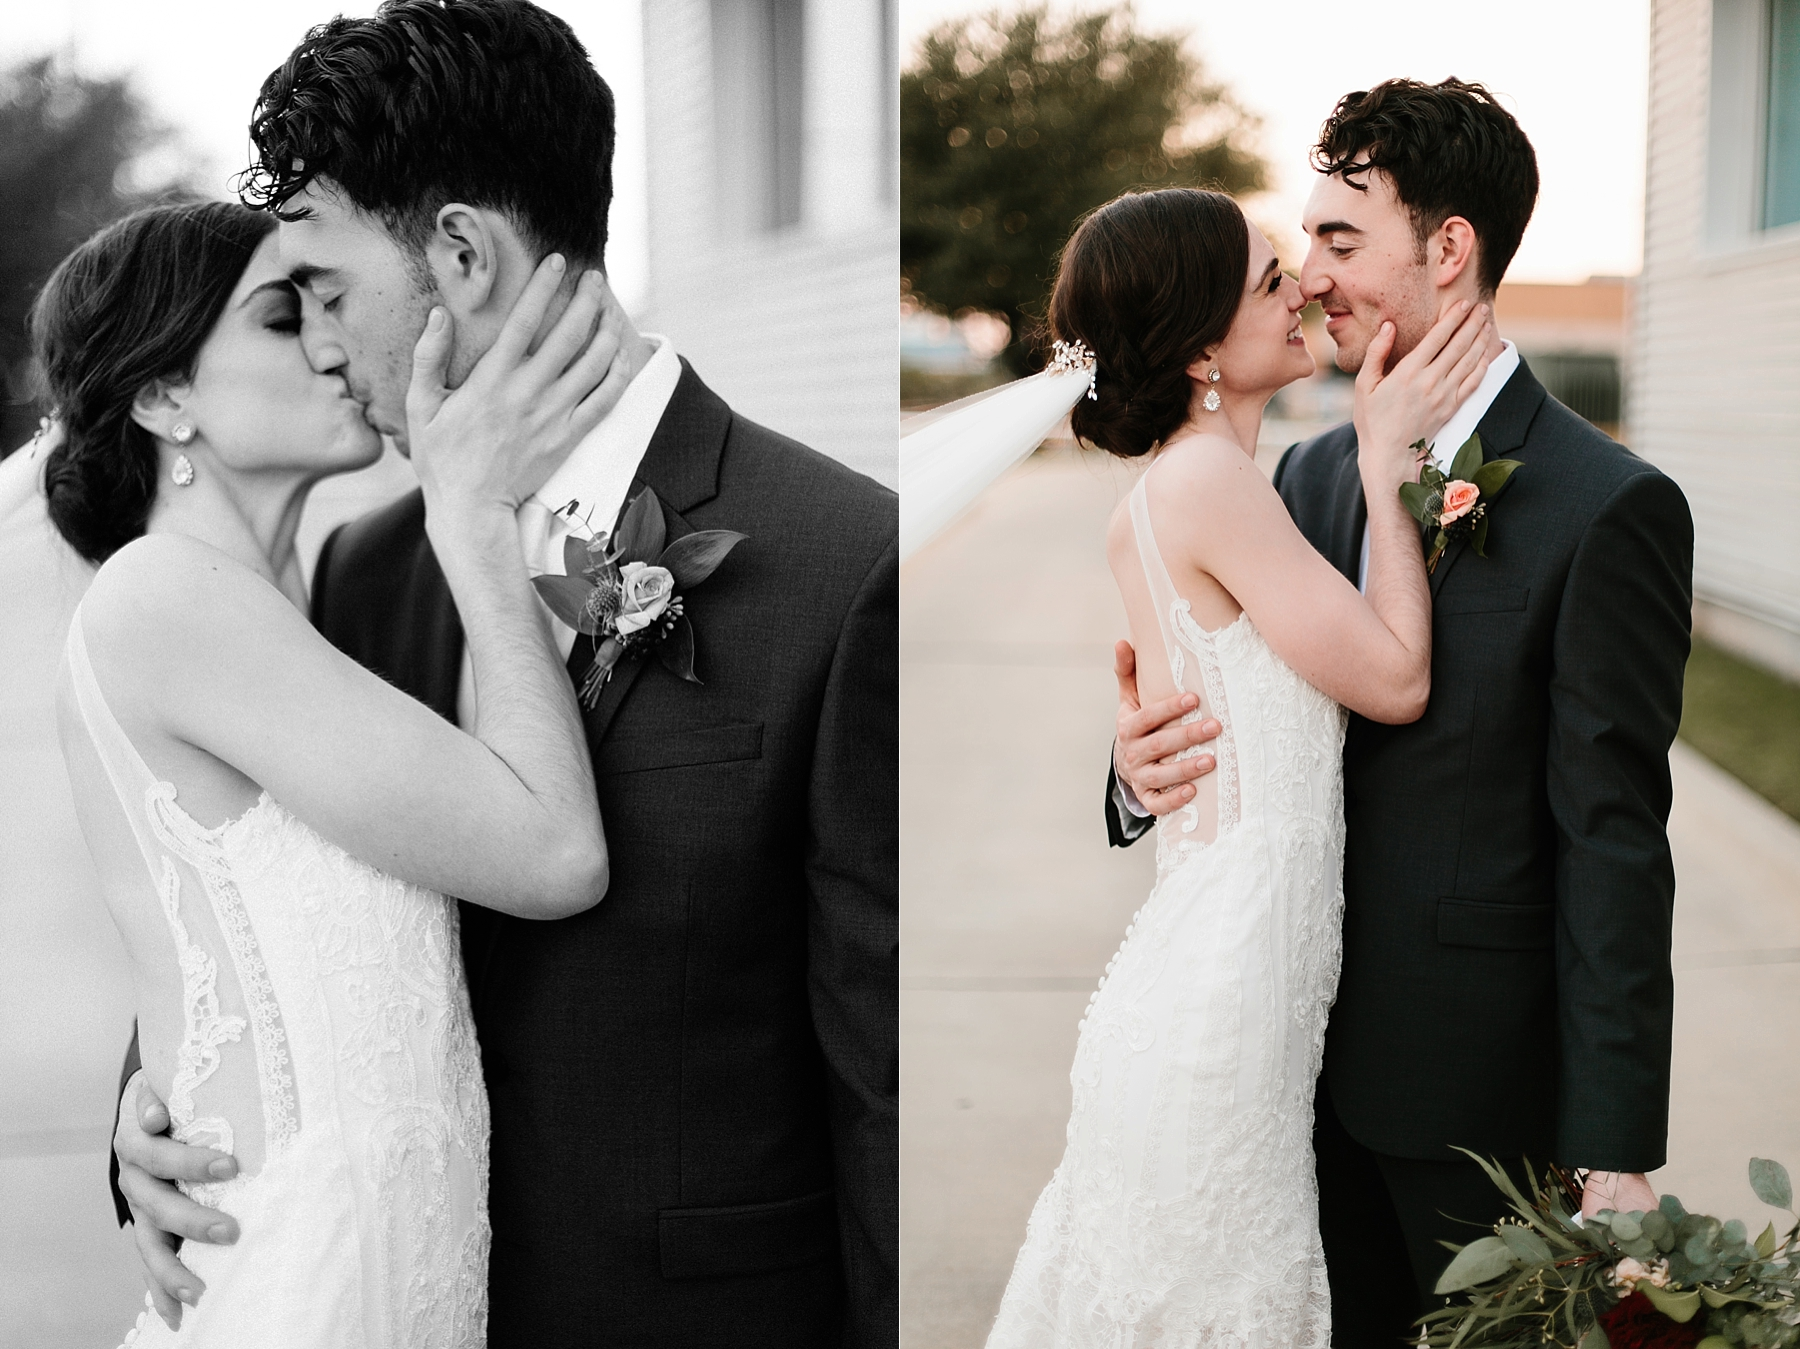 Emily + Caleb _ an elegant, intentional, industrial style wedding with navy + gold accents at 6500 in Dallas, TX by North Texas Wedding Photographer Rachel Meagan Photography _ 121